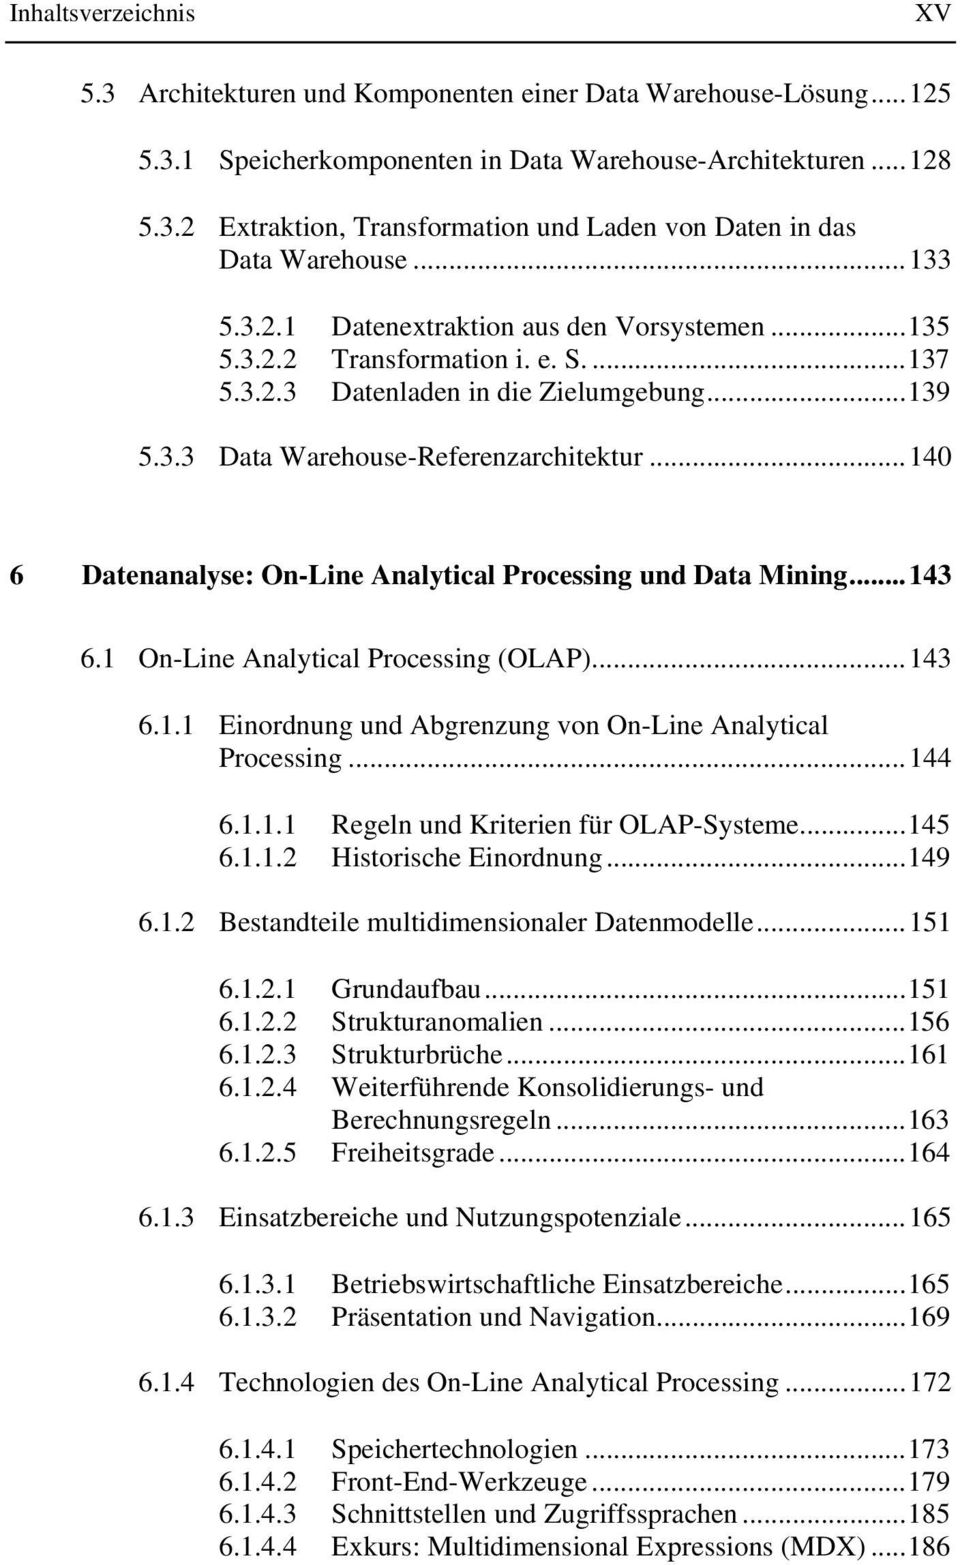 ..140 6 Datenanalyse: On-Line Analytical Processing und Data Mining...143 6.1 On-Line Analytical Processing (OLAP)...143 6.1.1 Einordnung und Abgrenzung von On-Line Analytical Processing...144 6.1.1.1 Regeln und Kriterien für OLAP-Systeme.